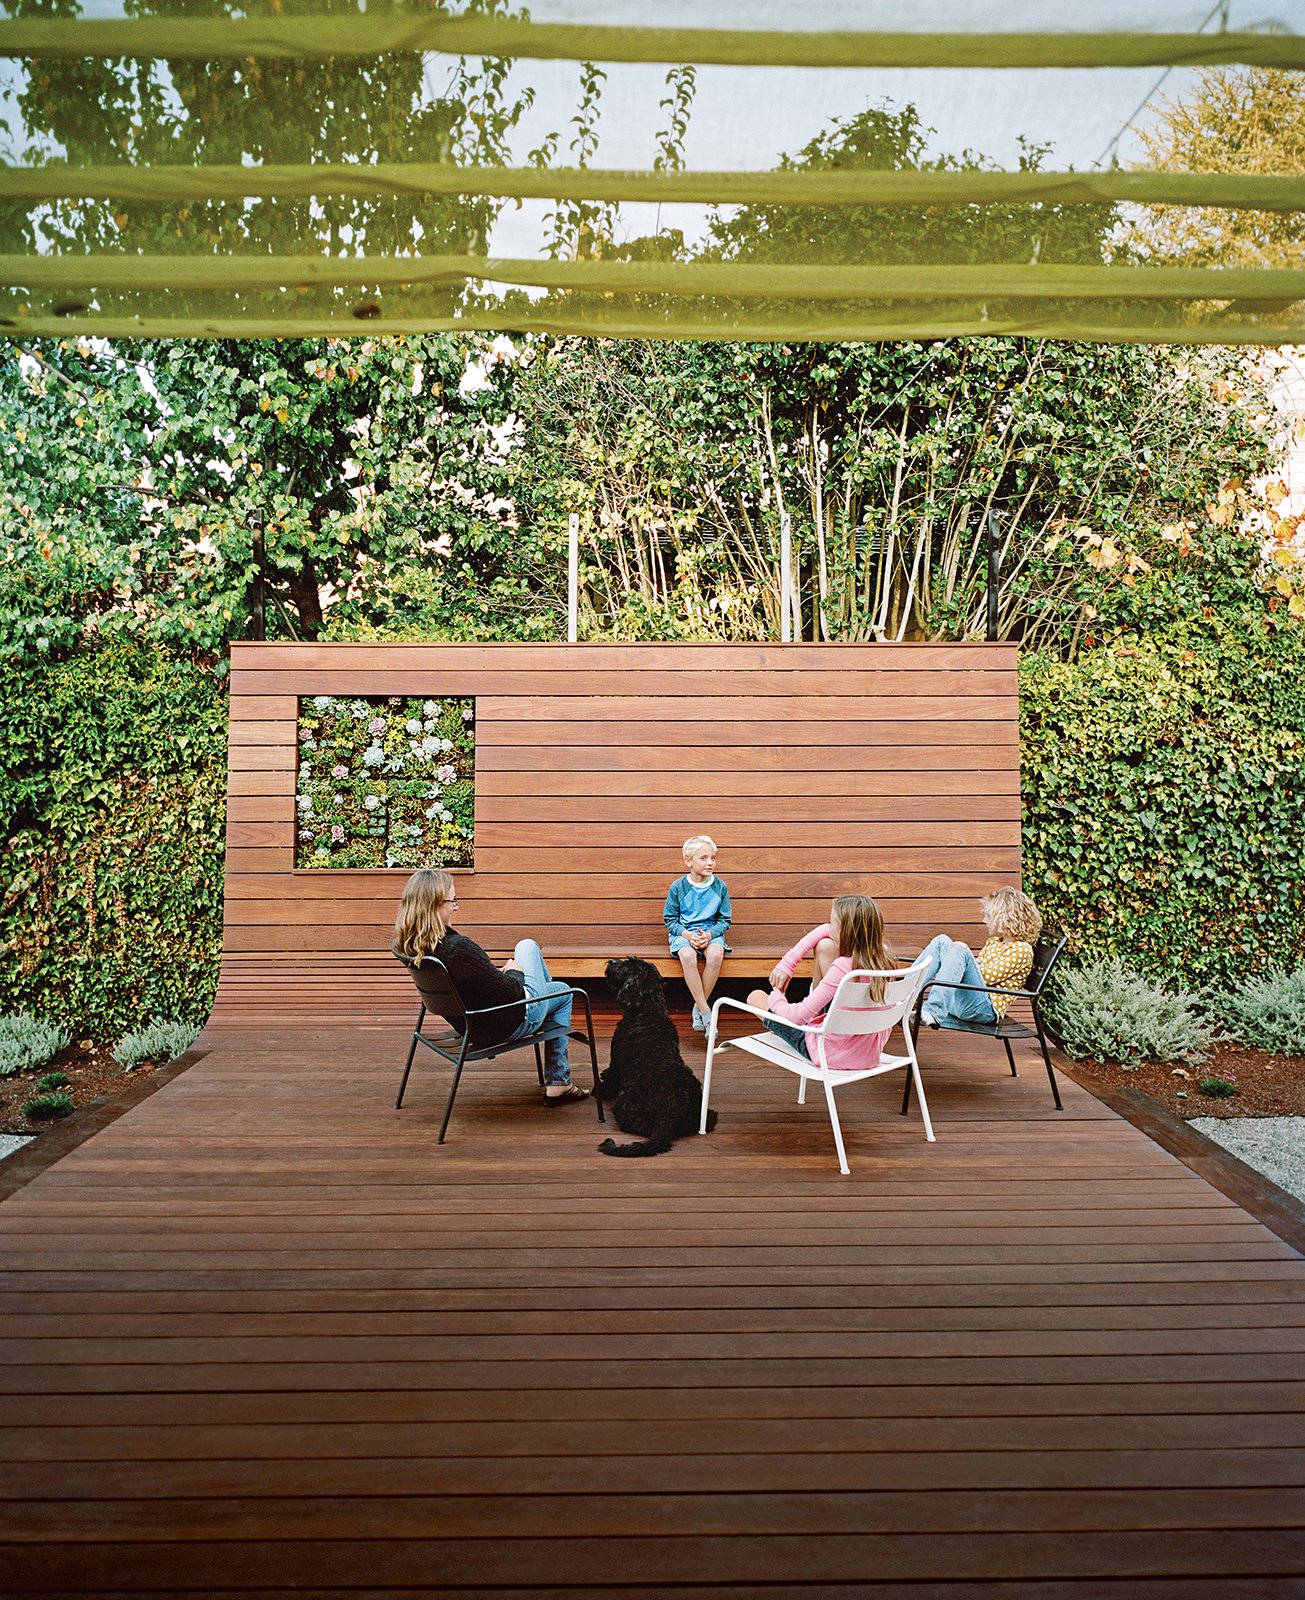 Articles about bay area ipe clad backyard getaway on Dwell.com